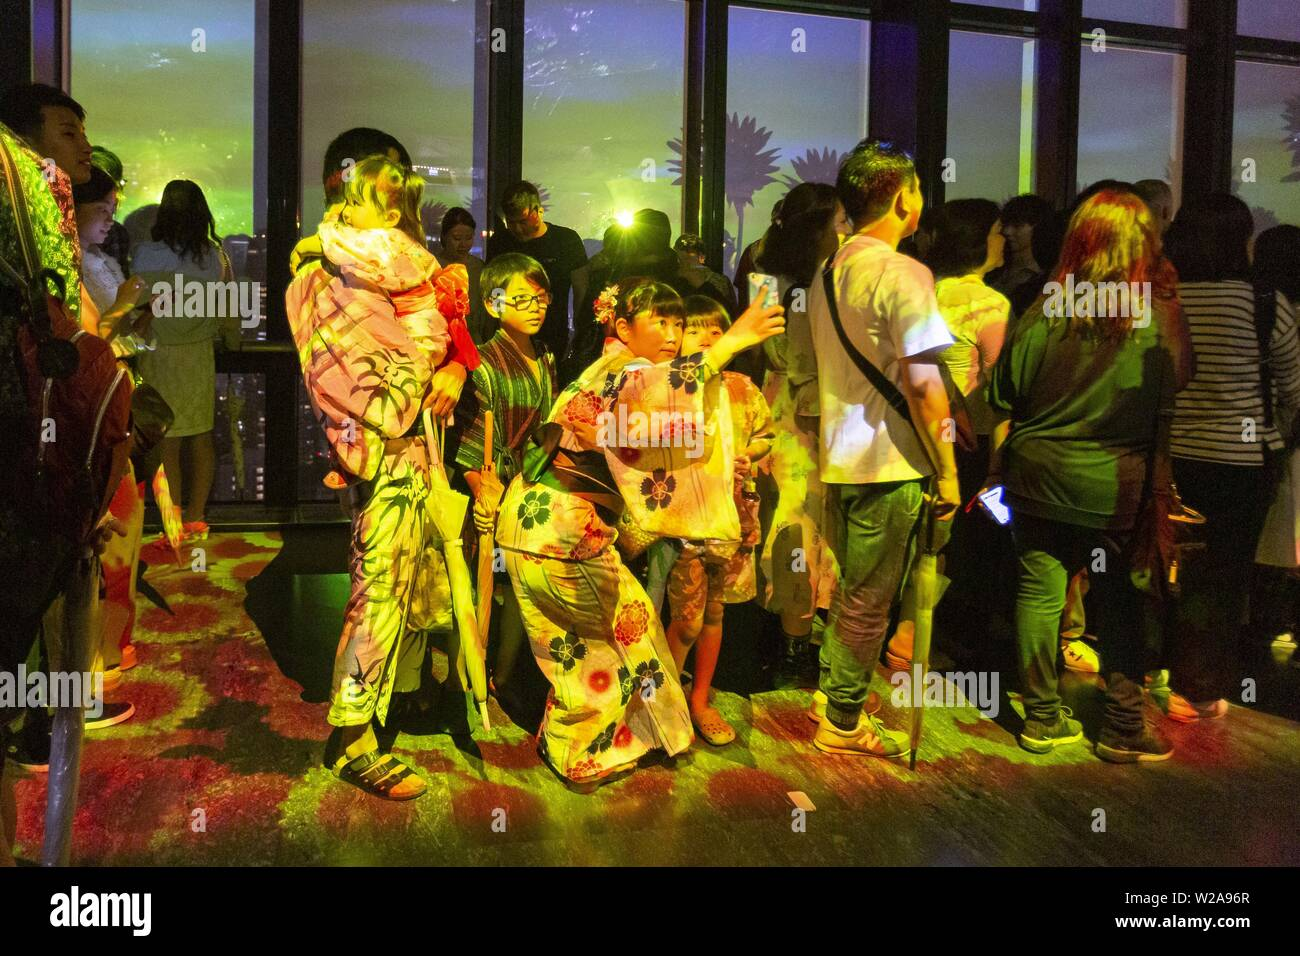 Tokyo, Japan. 7th July, 2019. Visitors wearing traditional Japanese clothes (Yukata) enjoy the illumination City Light Fantasia in commemoration of the festival of Tanabata at Tokyo Tower. Every year, people write their wishes on colorful papers (Tanzaku) to hang it on bamboo branches as a tradition of the Tanabata Festival. The annual celebration commemorates the legend of two lovers separated by the Milky Way who only meet once a year on the seventh day of the seventh month. The festival has been held since the Edo era. Credit: Rodrigo Reyes Marin/ZUMA Wire/Alamy Live News - Stock Image